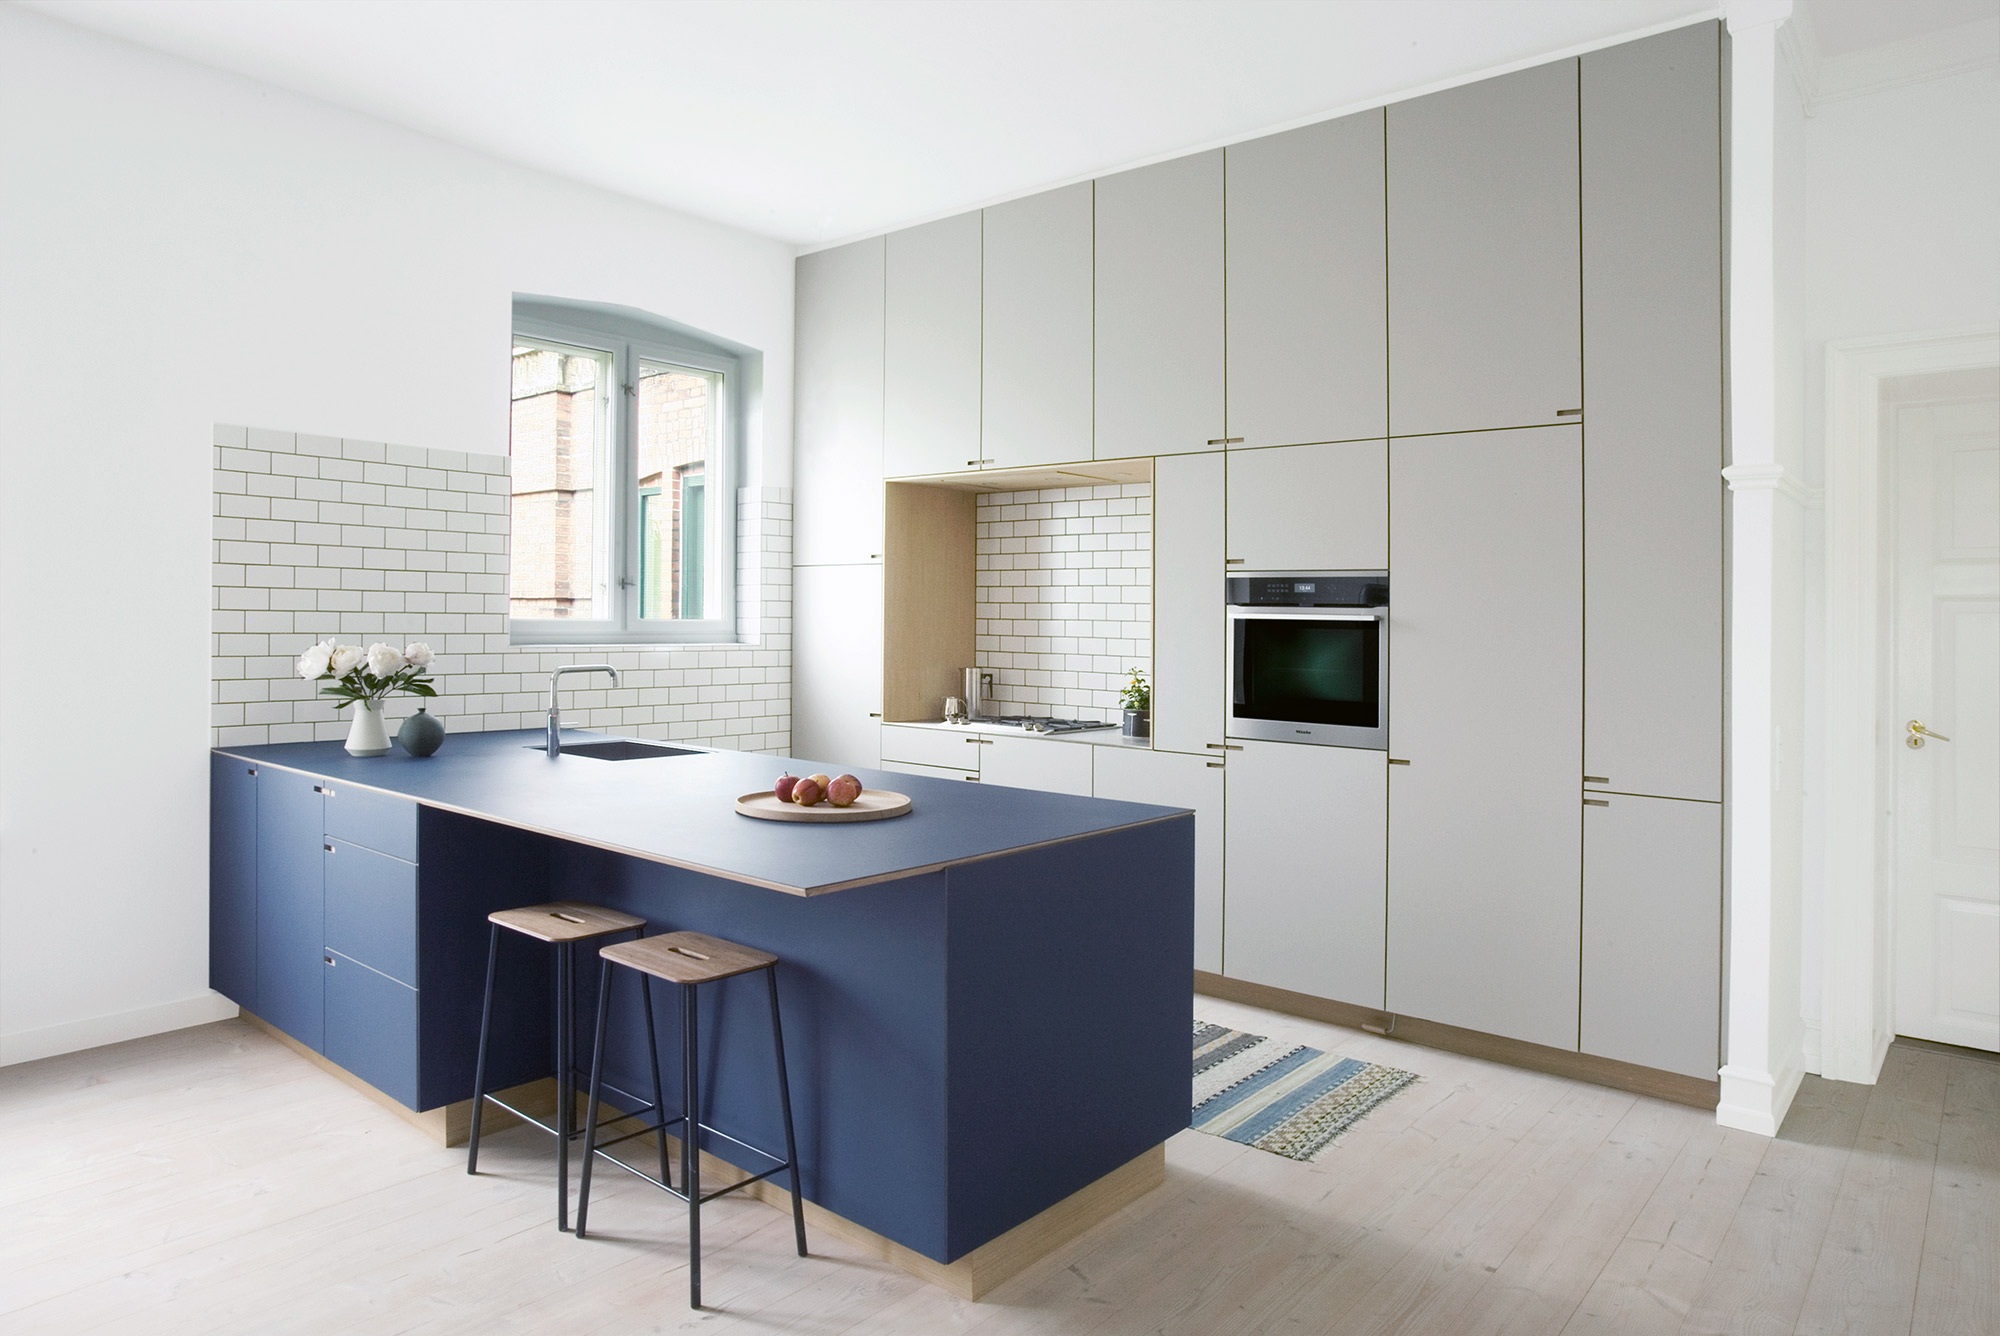 Oak wood kitchen by Nicolaj Bo™, Copenhagen